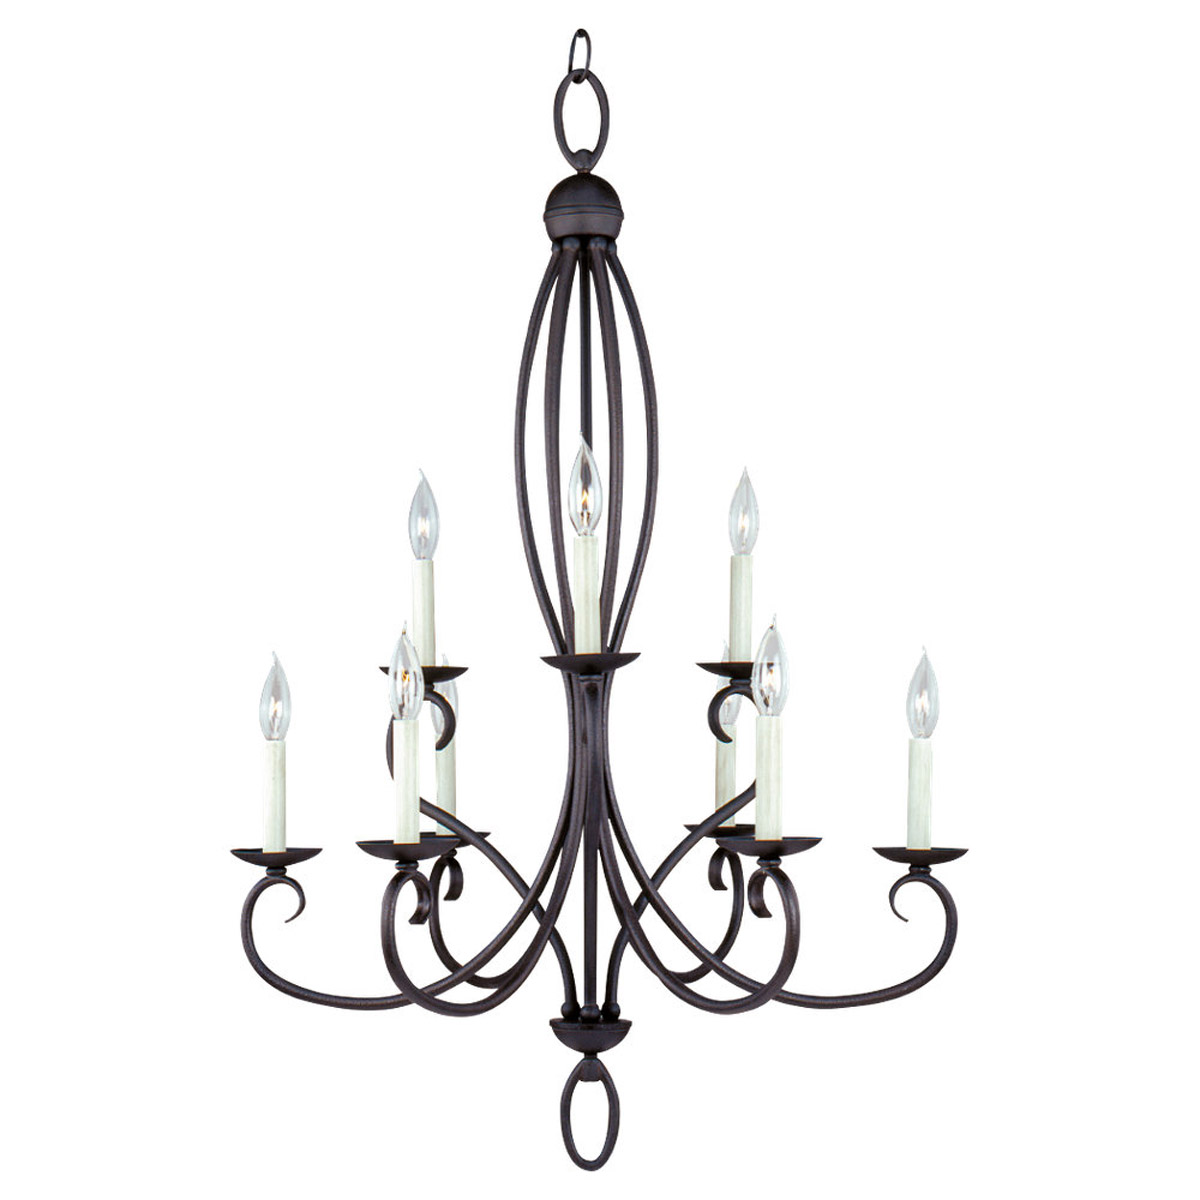 Sea Gull Lighting Pemberton 9 Light Chandelier in Peppercorn 31075-799 photo